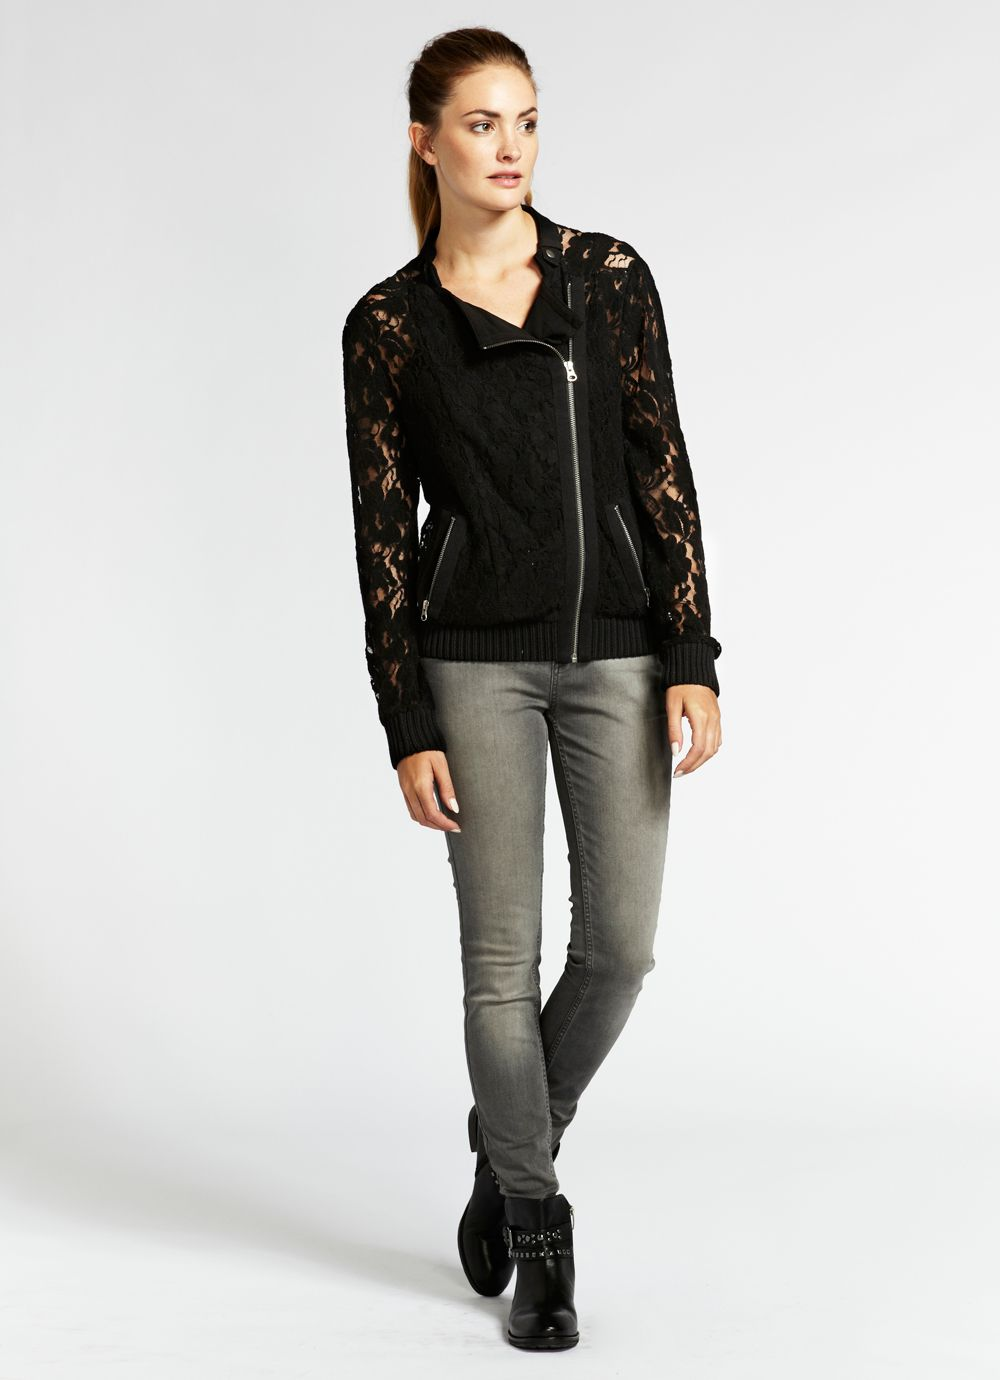 Black wool lace biker cardigan